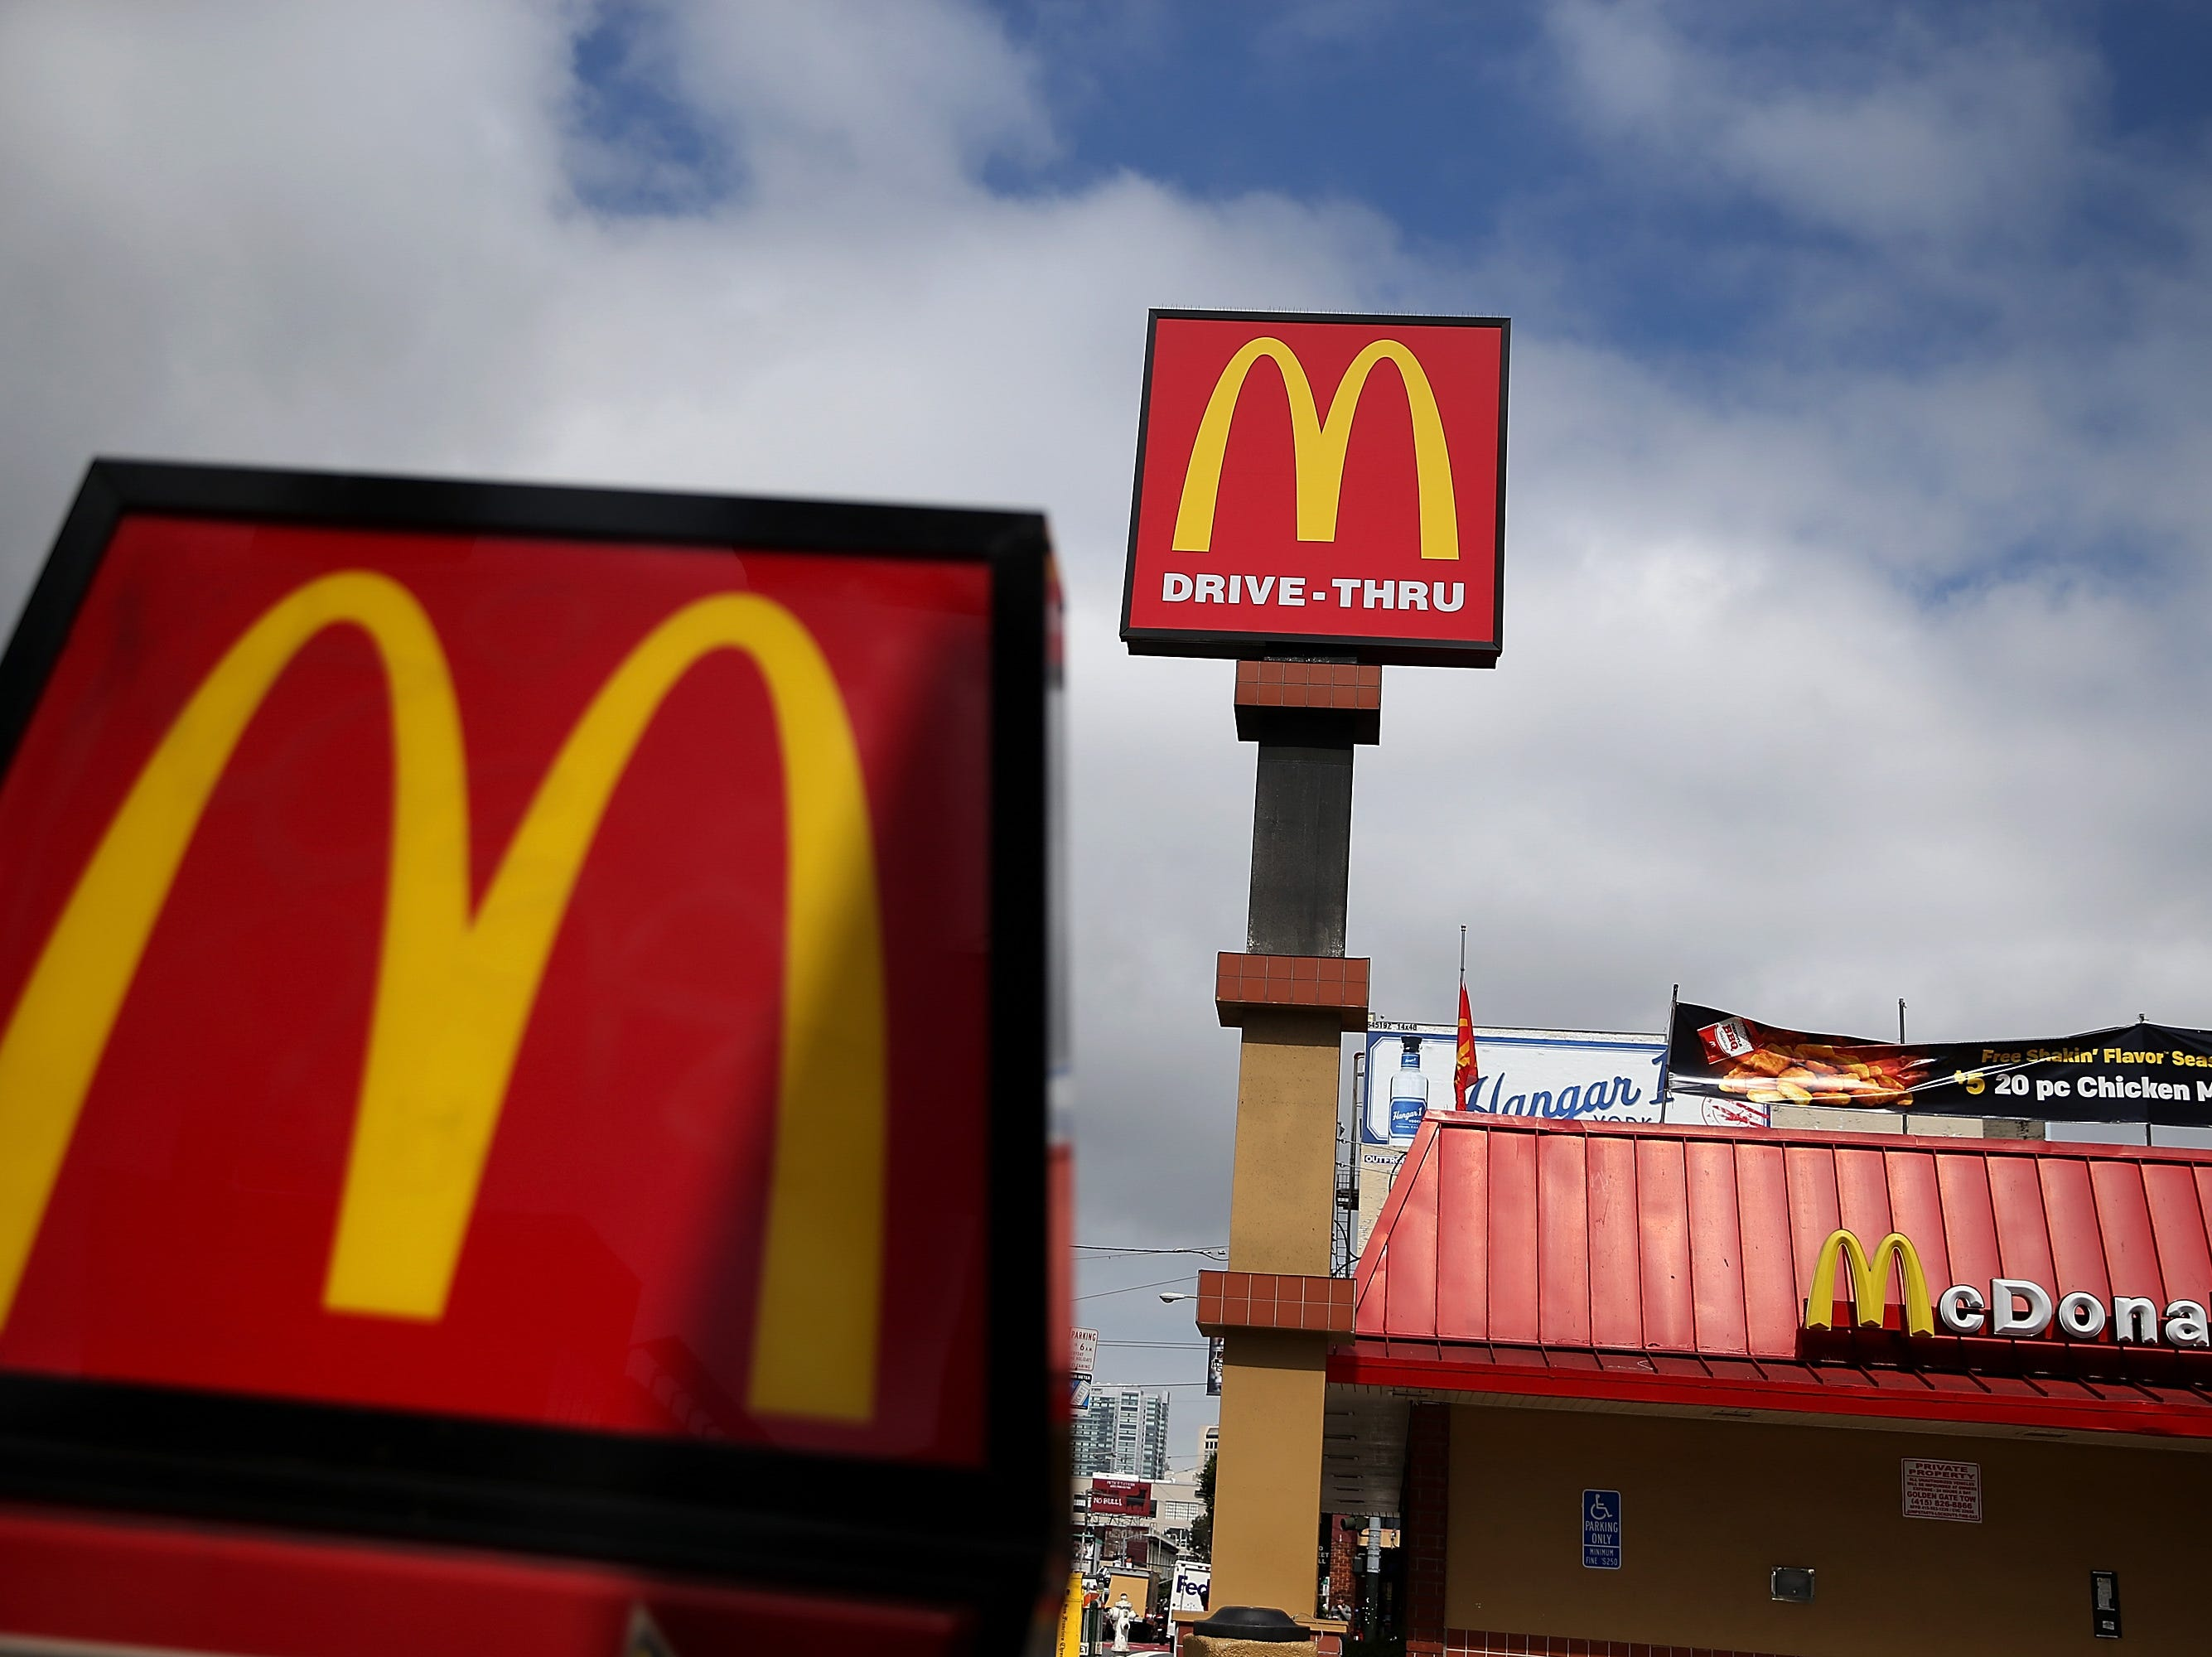 SAN FRANCISCO, CA - APRIL 22:  Signs are posted on the exterior of a McDonald's restaurant on April 22, 2015 in San Francisco, California. McDonald's reported a decline in first quarter revenues with a profit of $811.5 million, or 84 cents a share compared to $1.2 billion, or $1.21 a share, one year ago.  (Photo by Justin Sullivan/Getty Images)